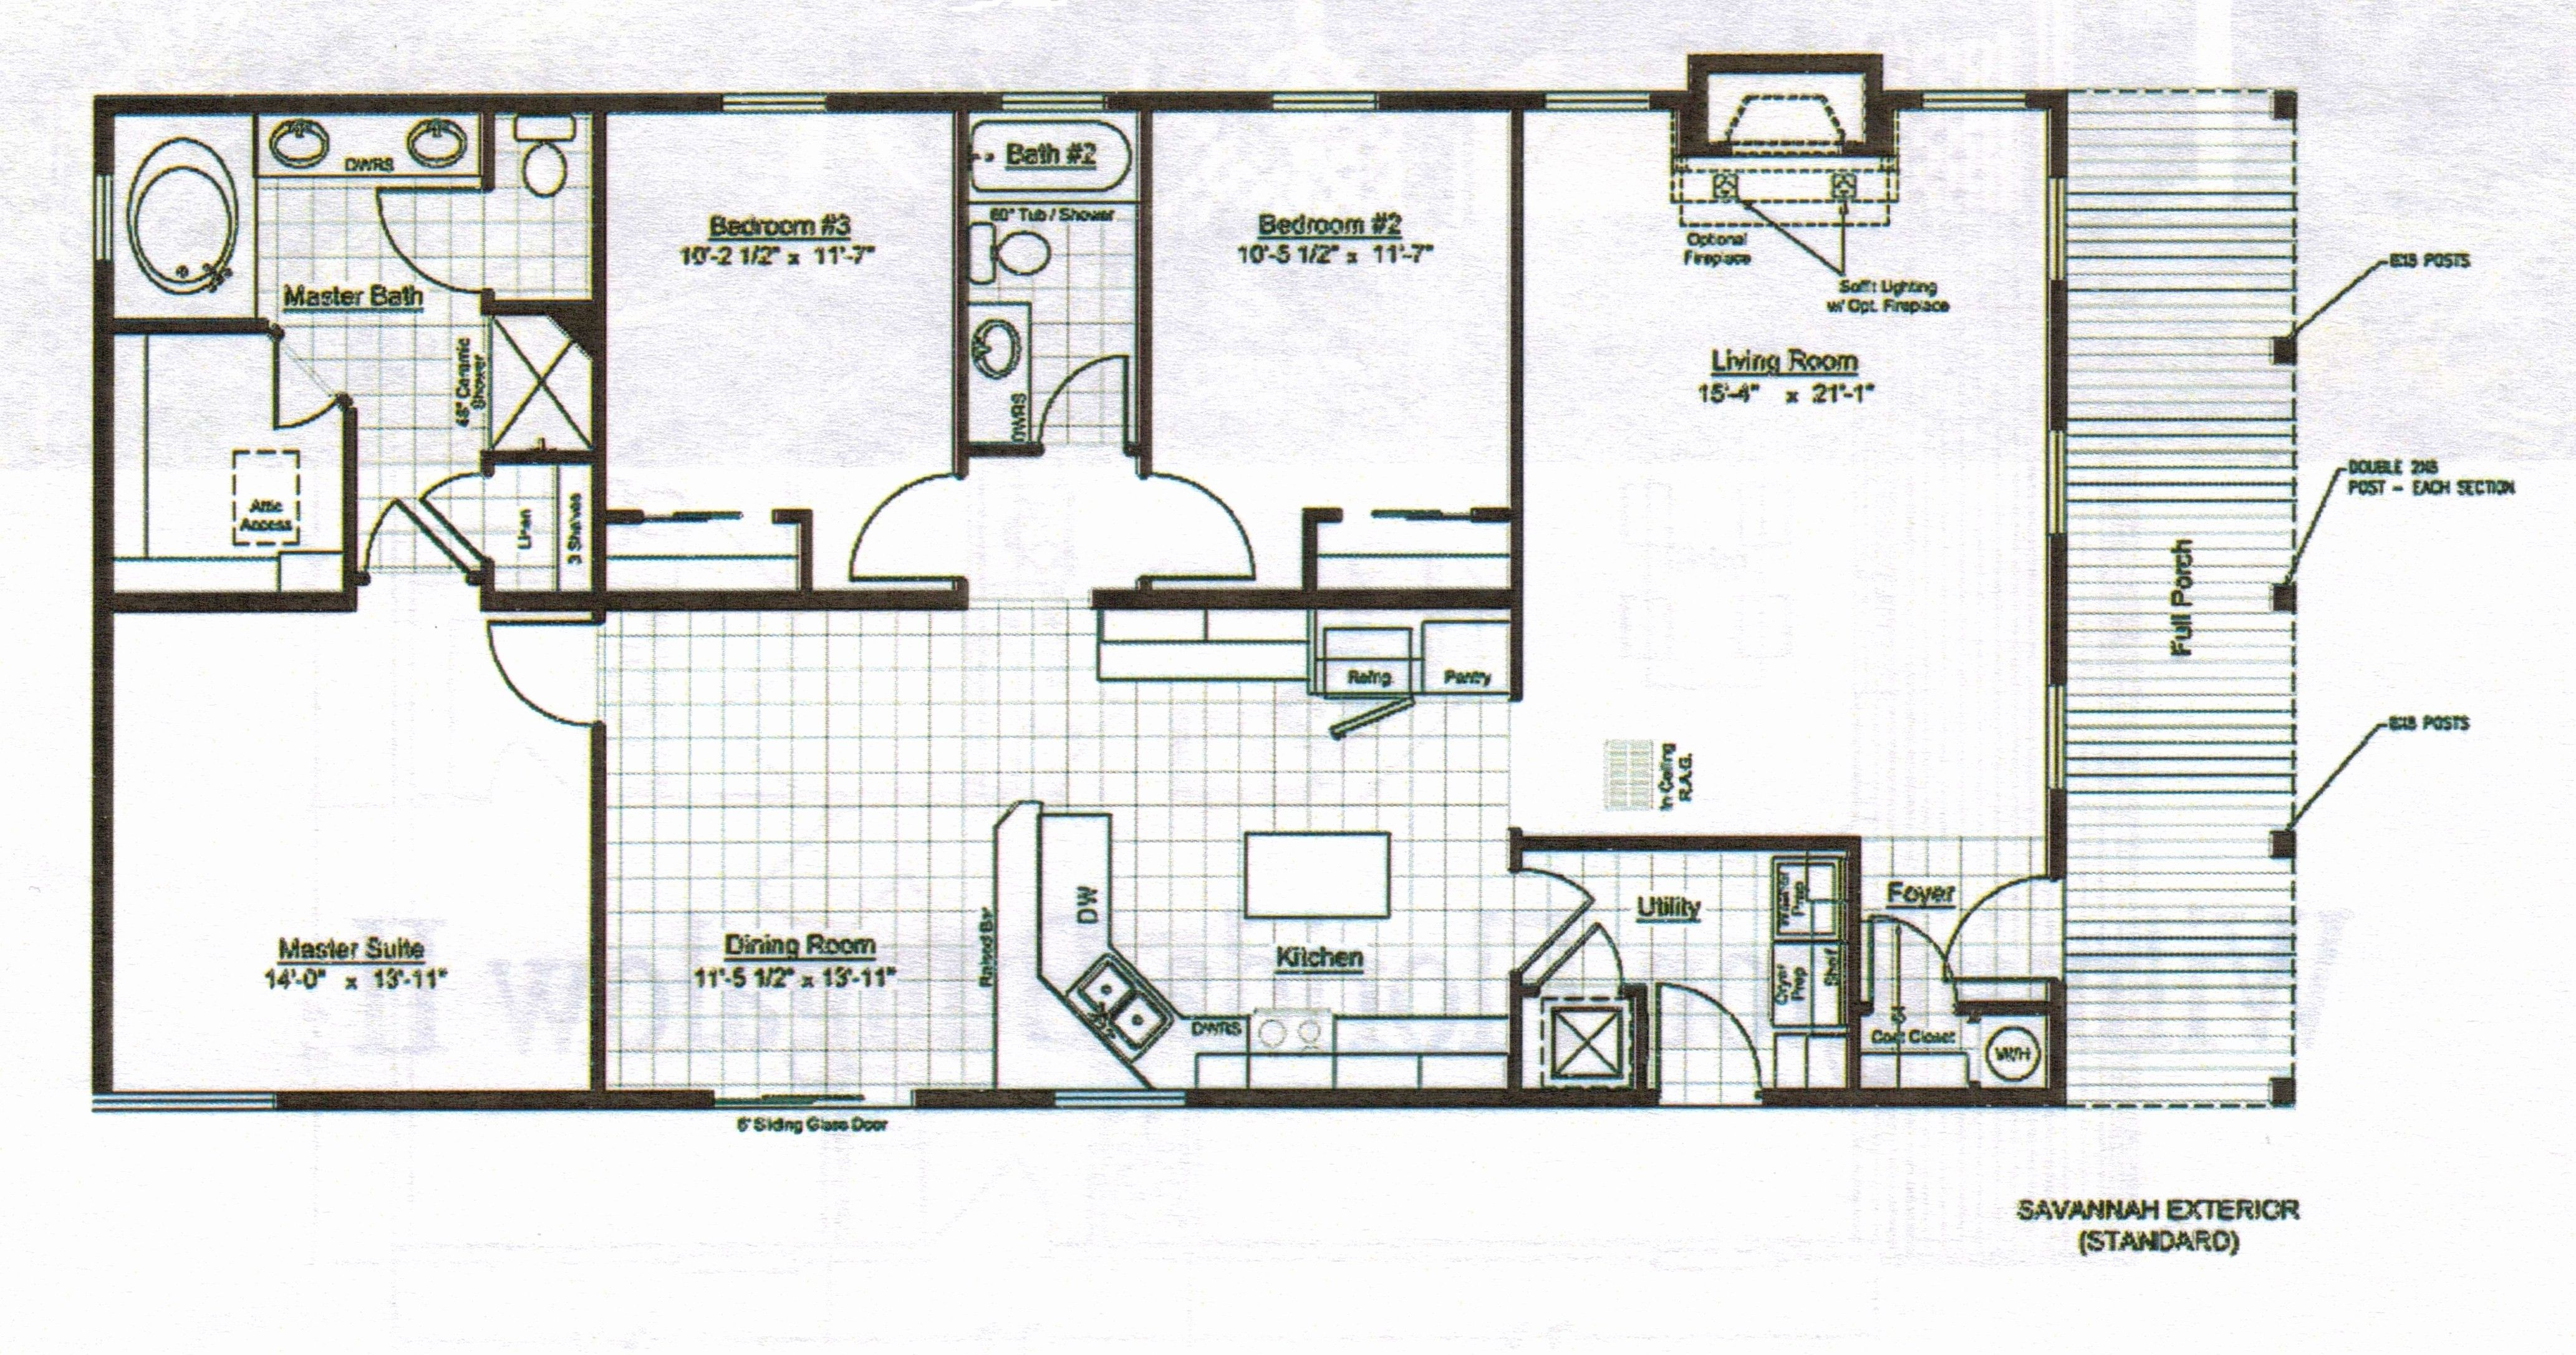 2 Storey House Plans Philippines With Blueprint Fresh Luxury House Design Plans Lovely 21 Awesome Porch House Floor Plans Floor Plan Design Simple Floor Plans